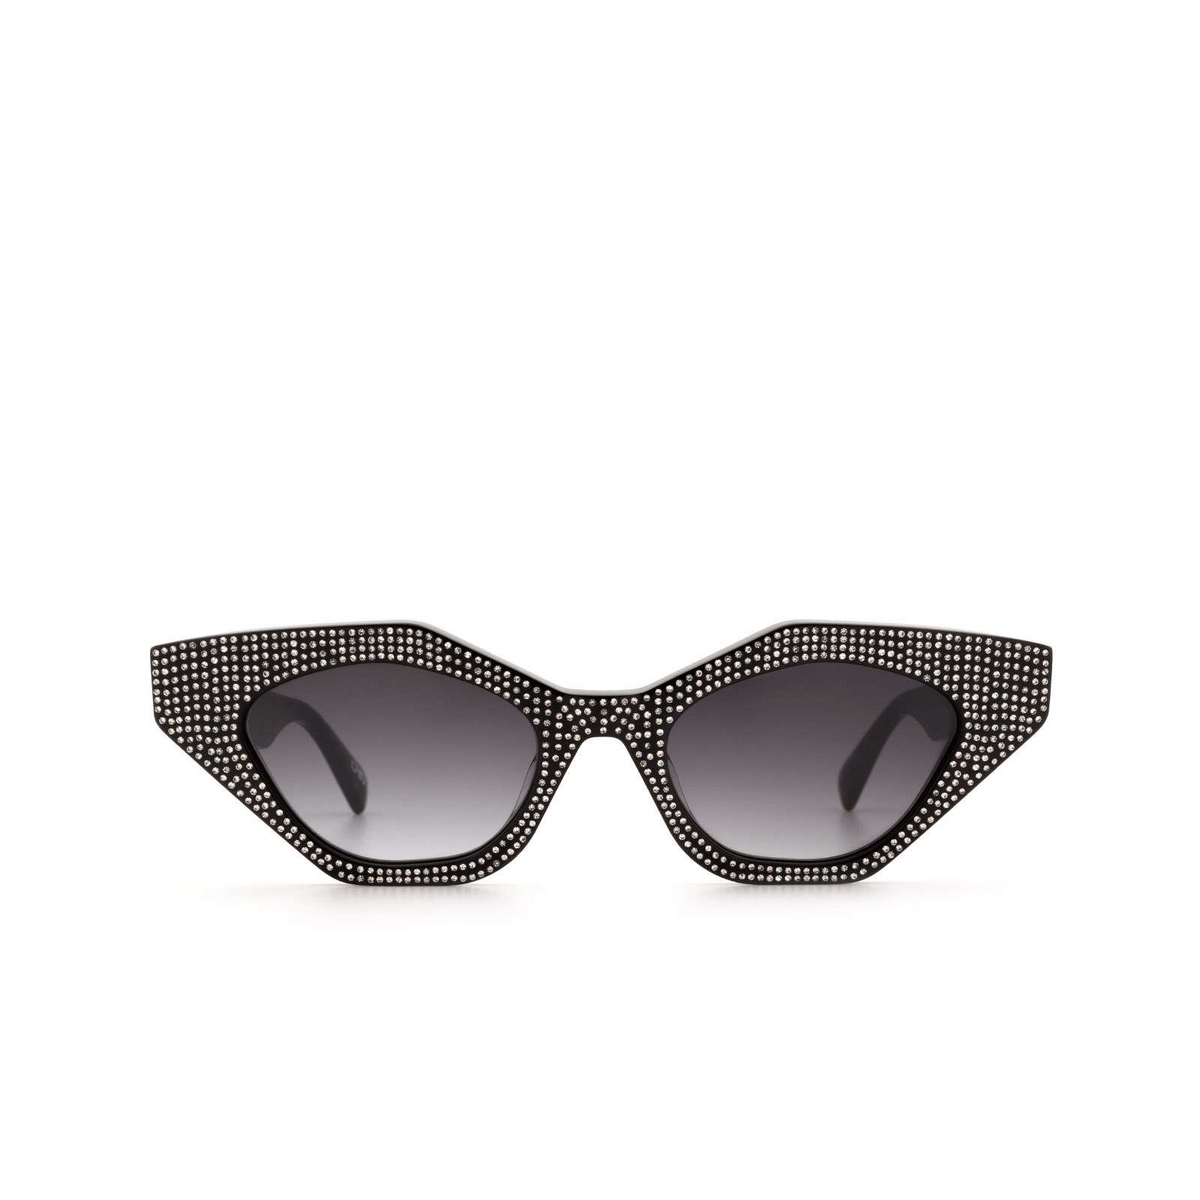 Chimi® Cat-eye Sunglasses: Star Cluster color Black Shine - front view.